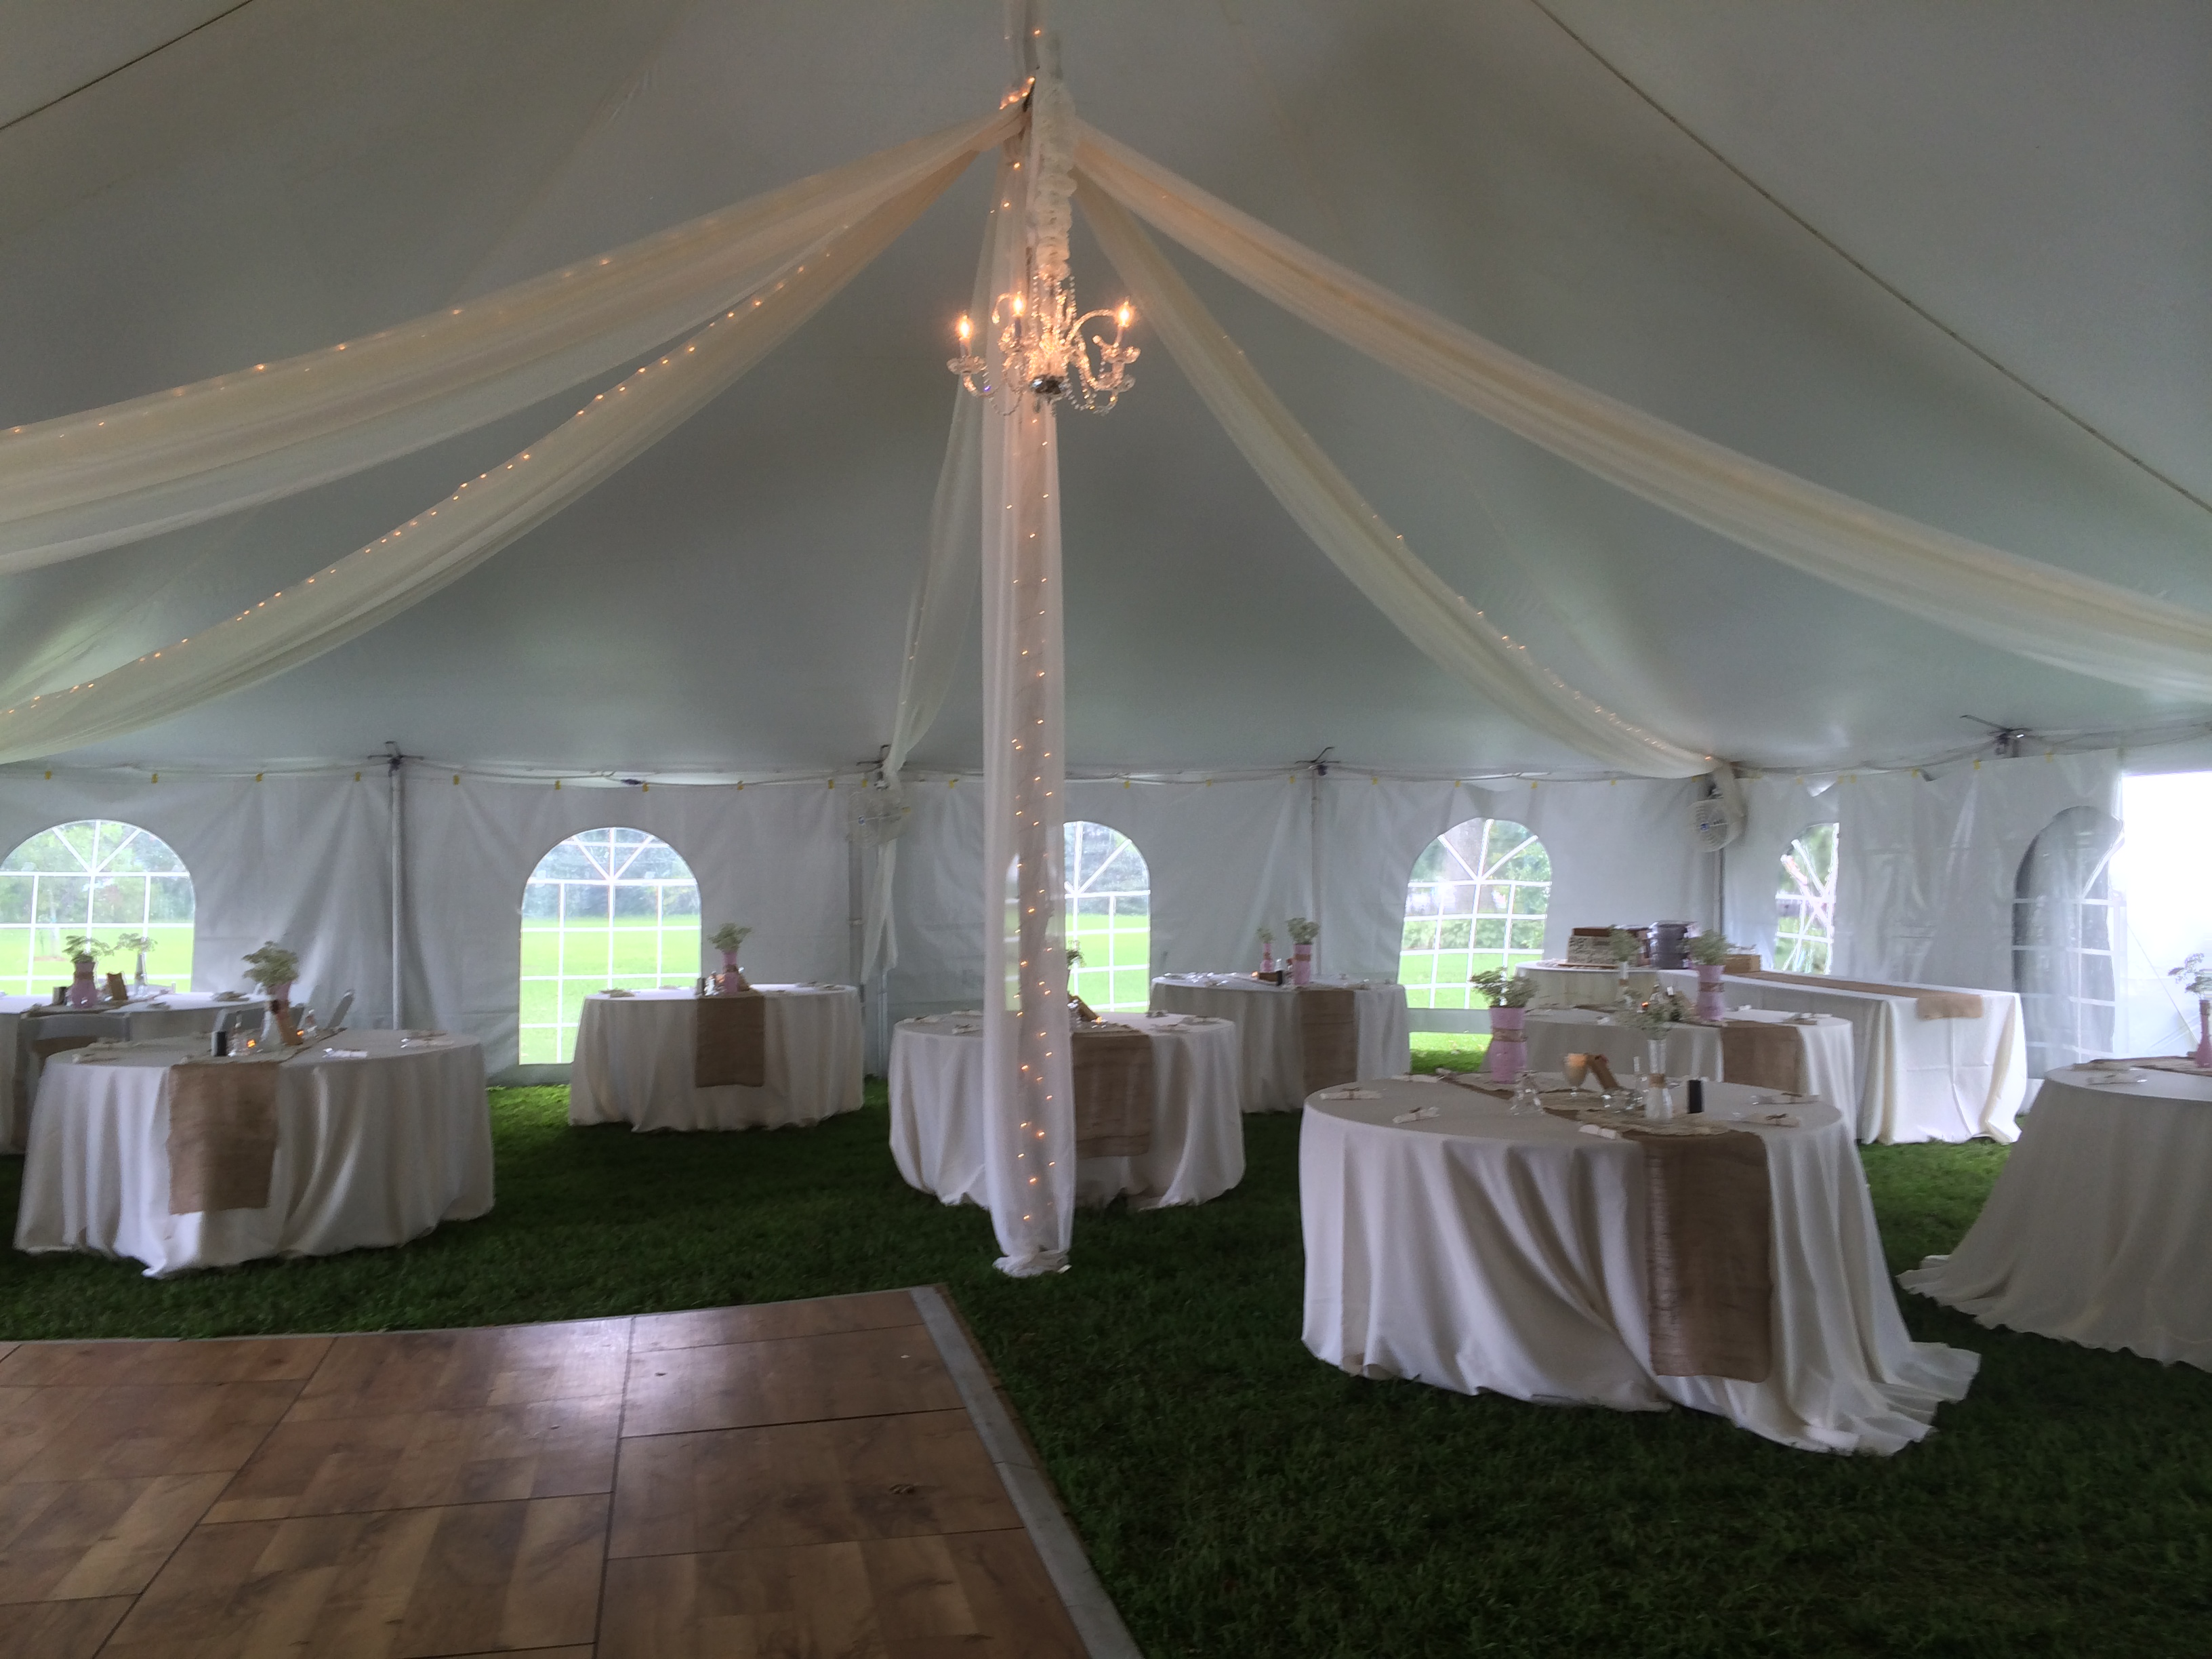 Italian bistro cafe string light rental for wedding reception in - Tent Kiting With Sting Lighting And Optional Chandelier